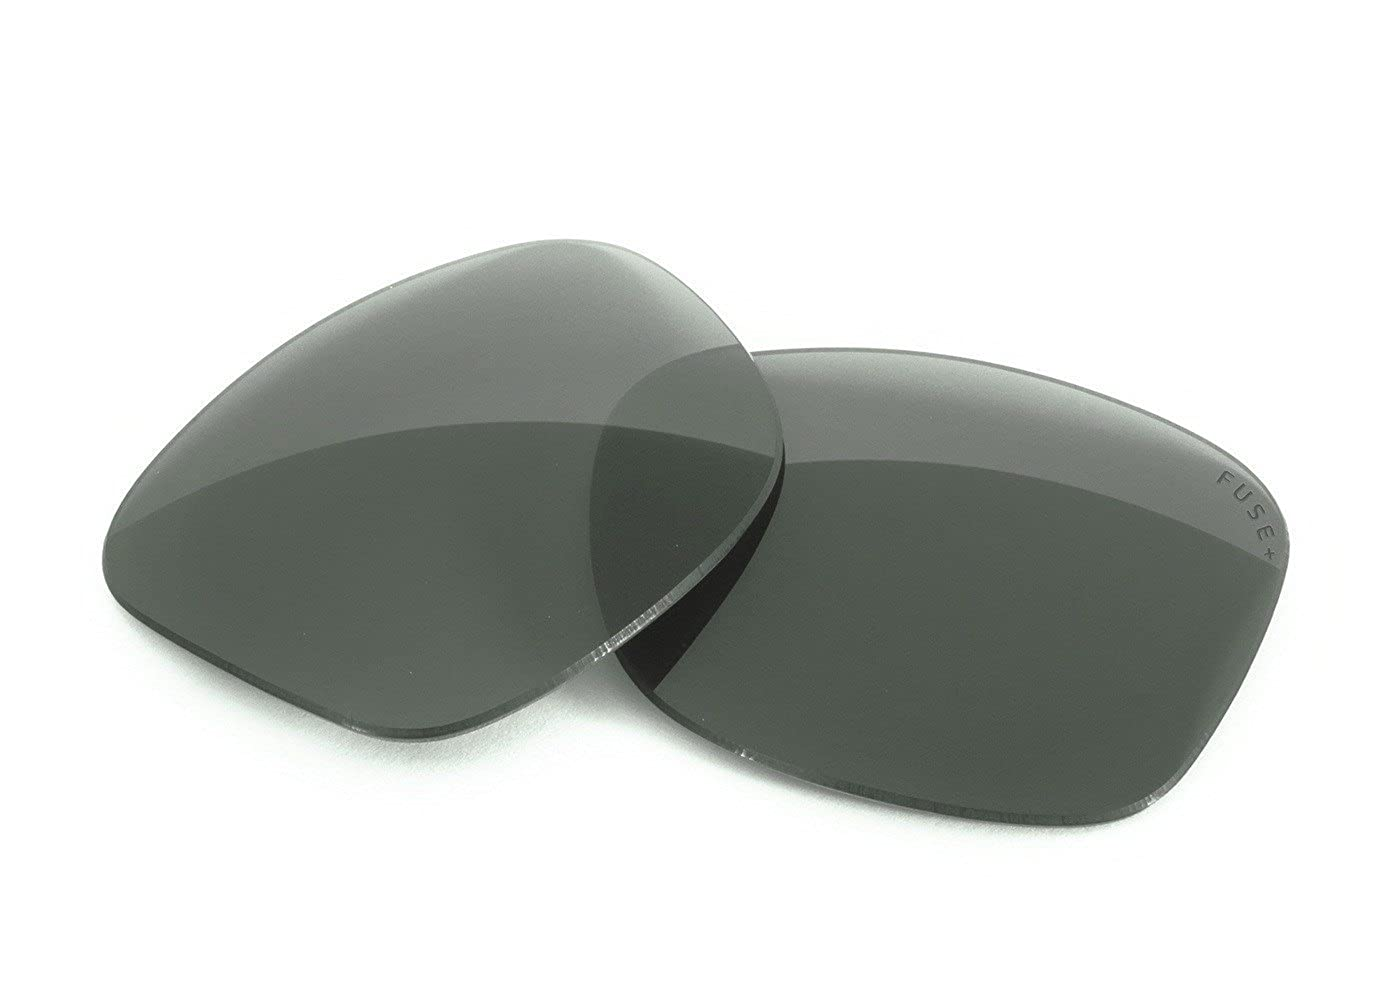 FUSE+ G15 Polarized Lenses for Ray-Ban RB2132 New Wayfarer (55mm) fuse lenses 100151-ZSG15P-000000